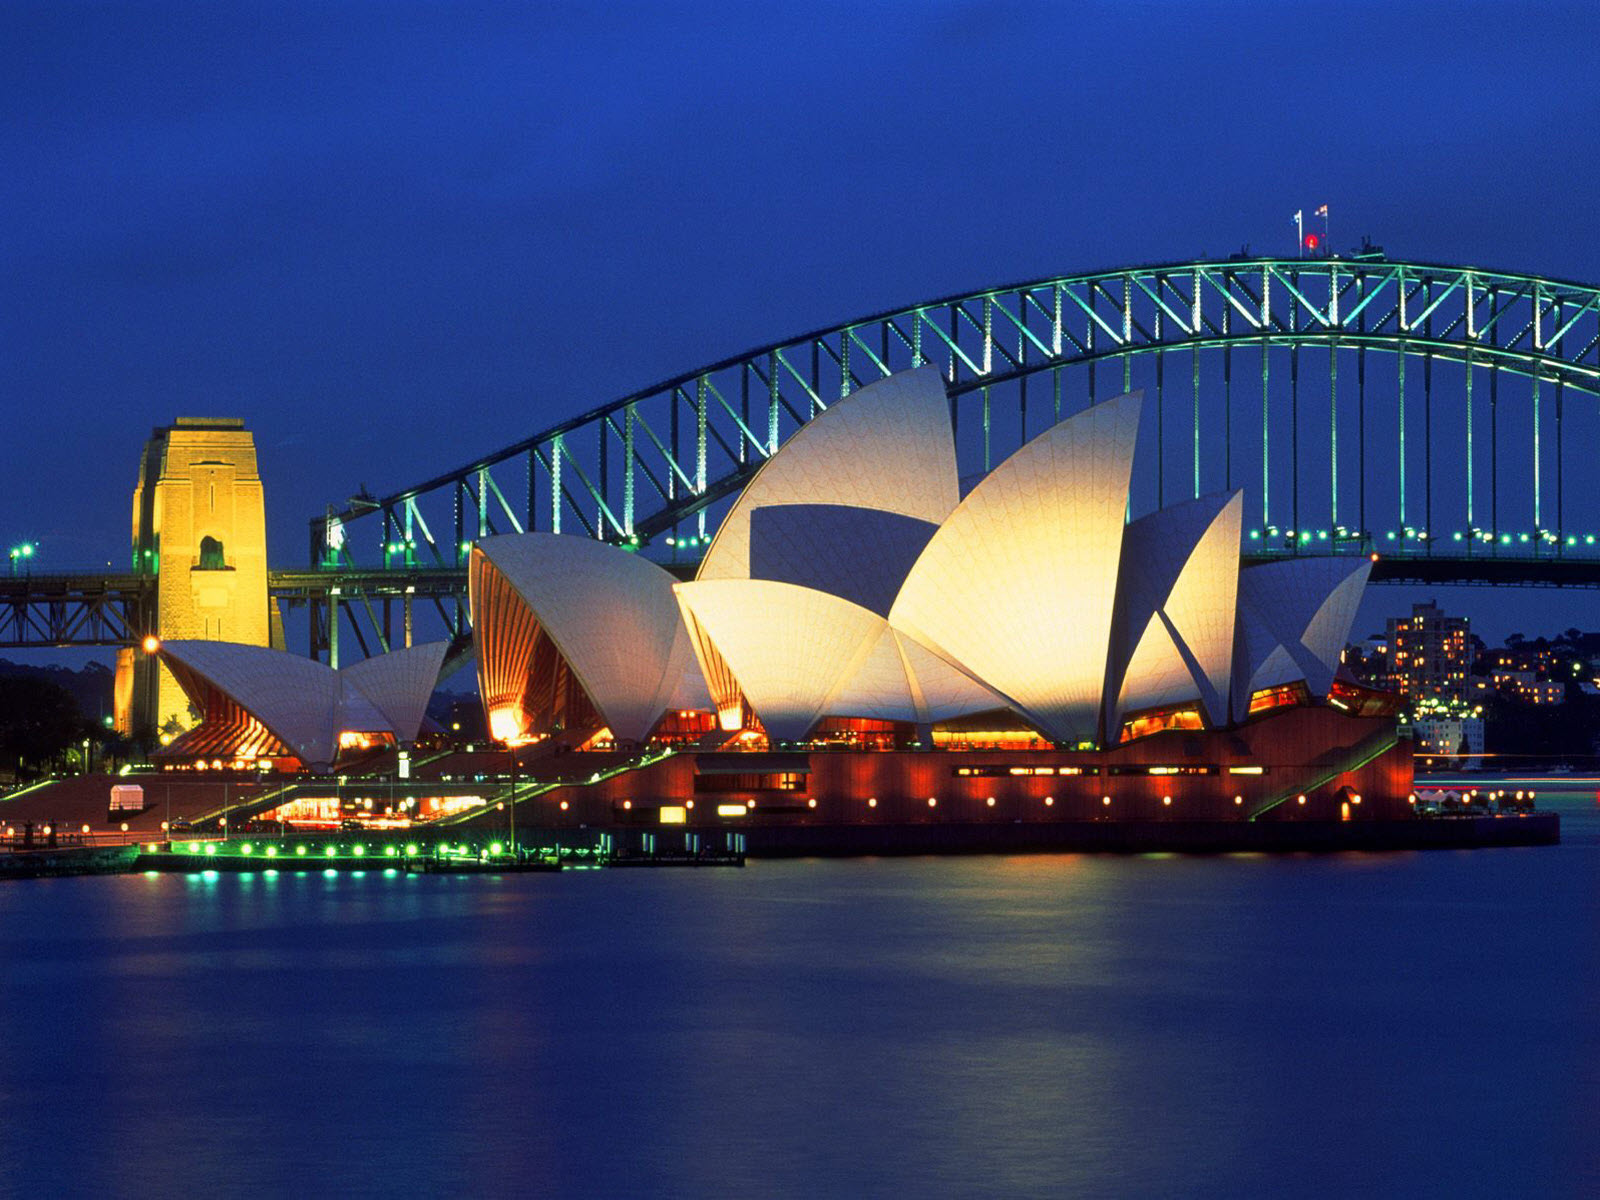 Images of opera house in australia